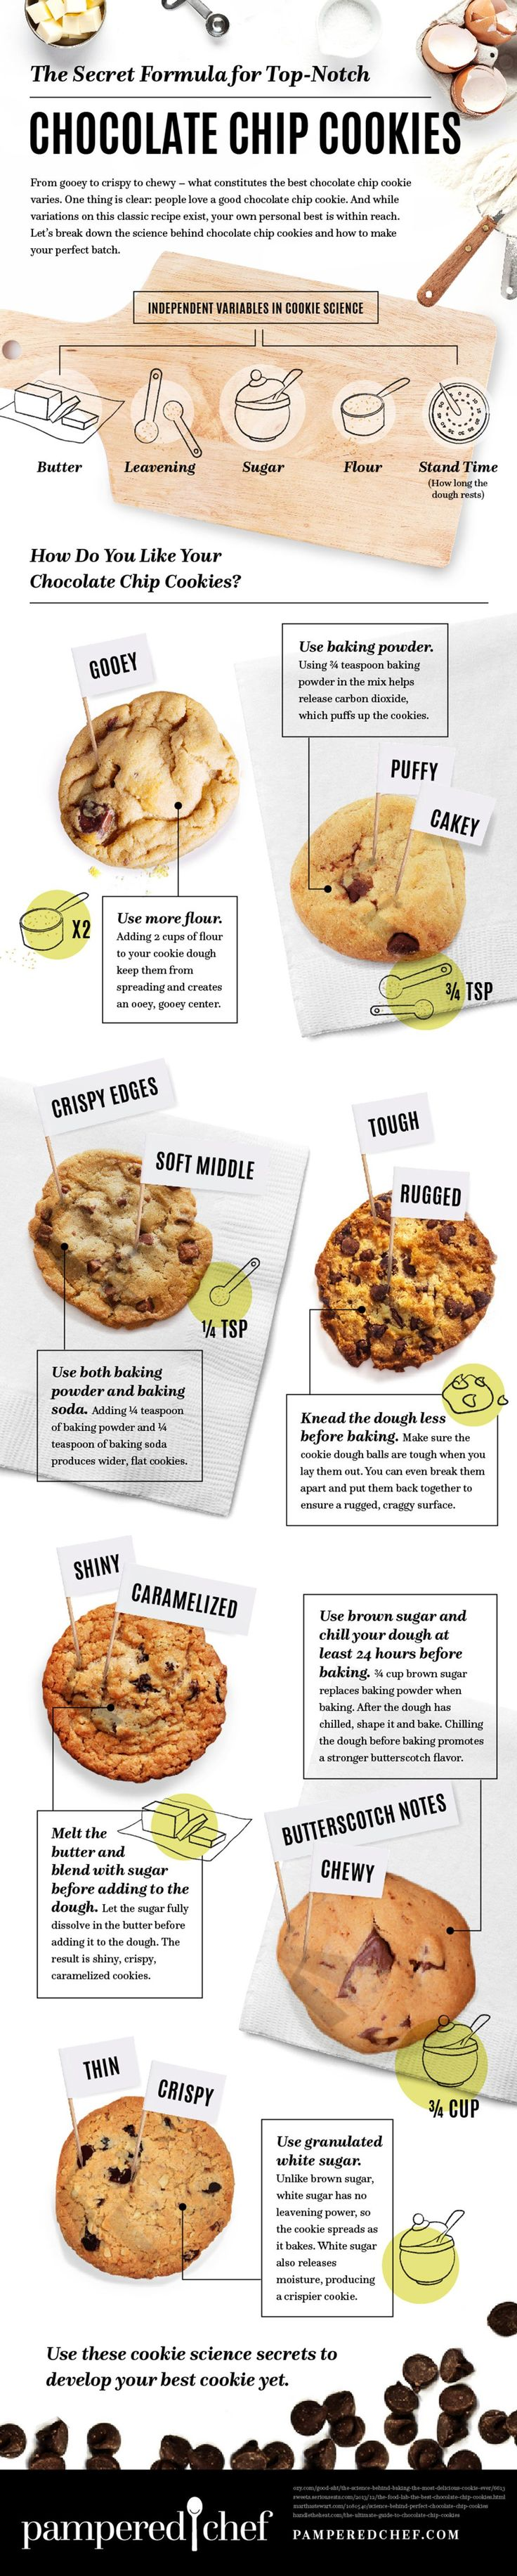 Secret Formula for Baking Chocolate Chip Cookies Infographic. Topic: recipe